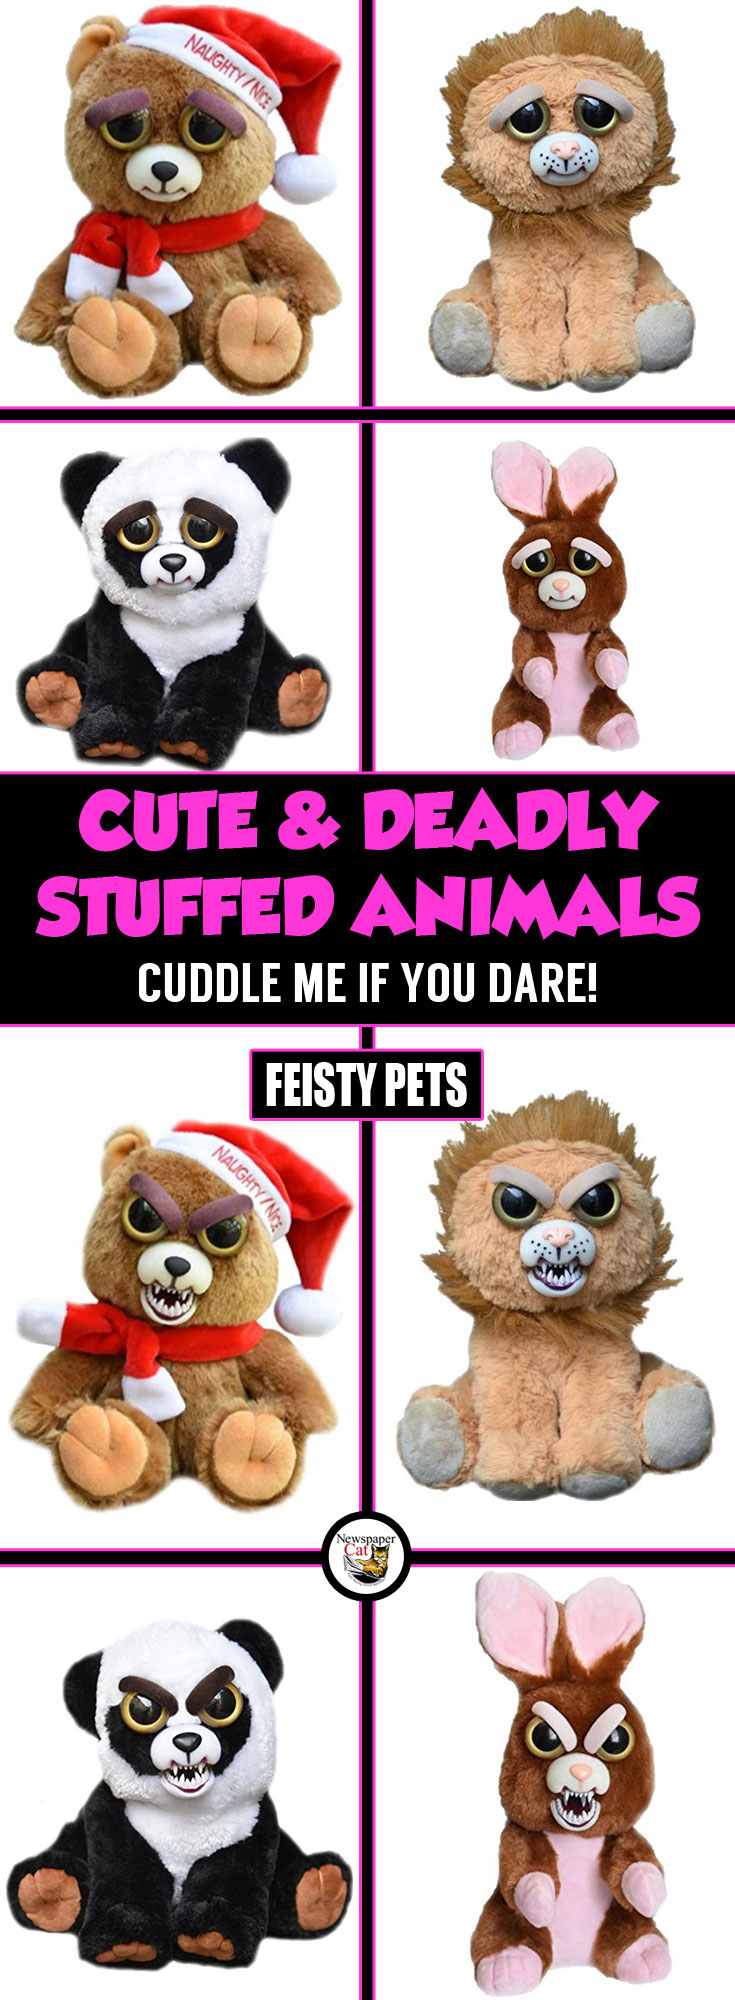 OMG! These Feisty Pets Animal Plushes Are Adorably Deadly. I Could Have Fun With These. MUAHAHA!